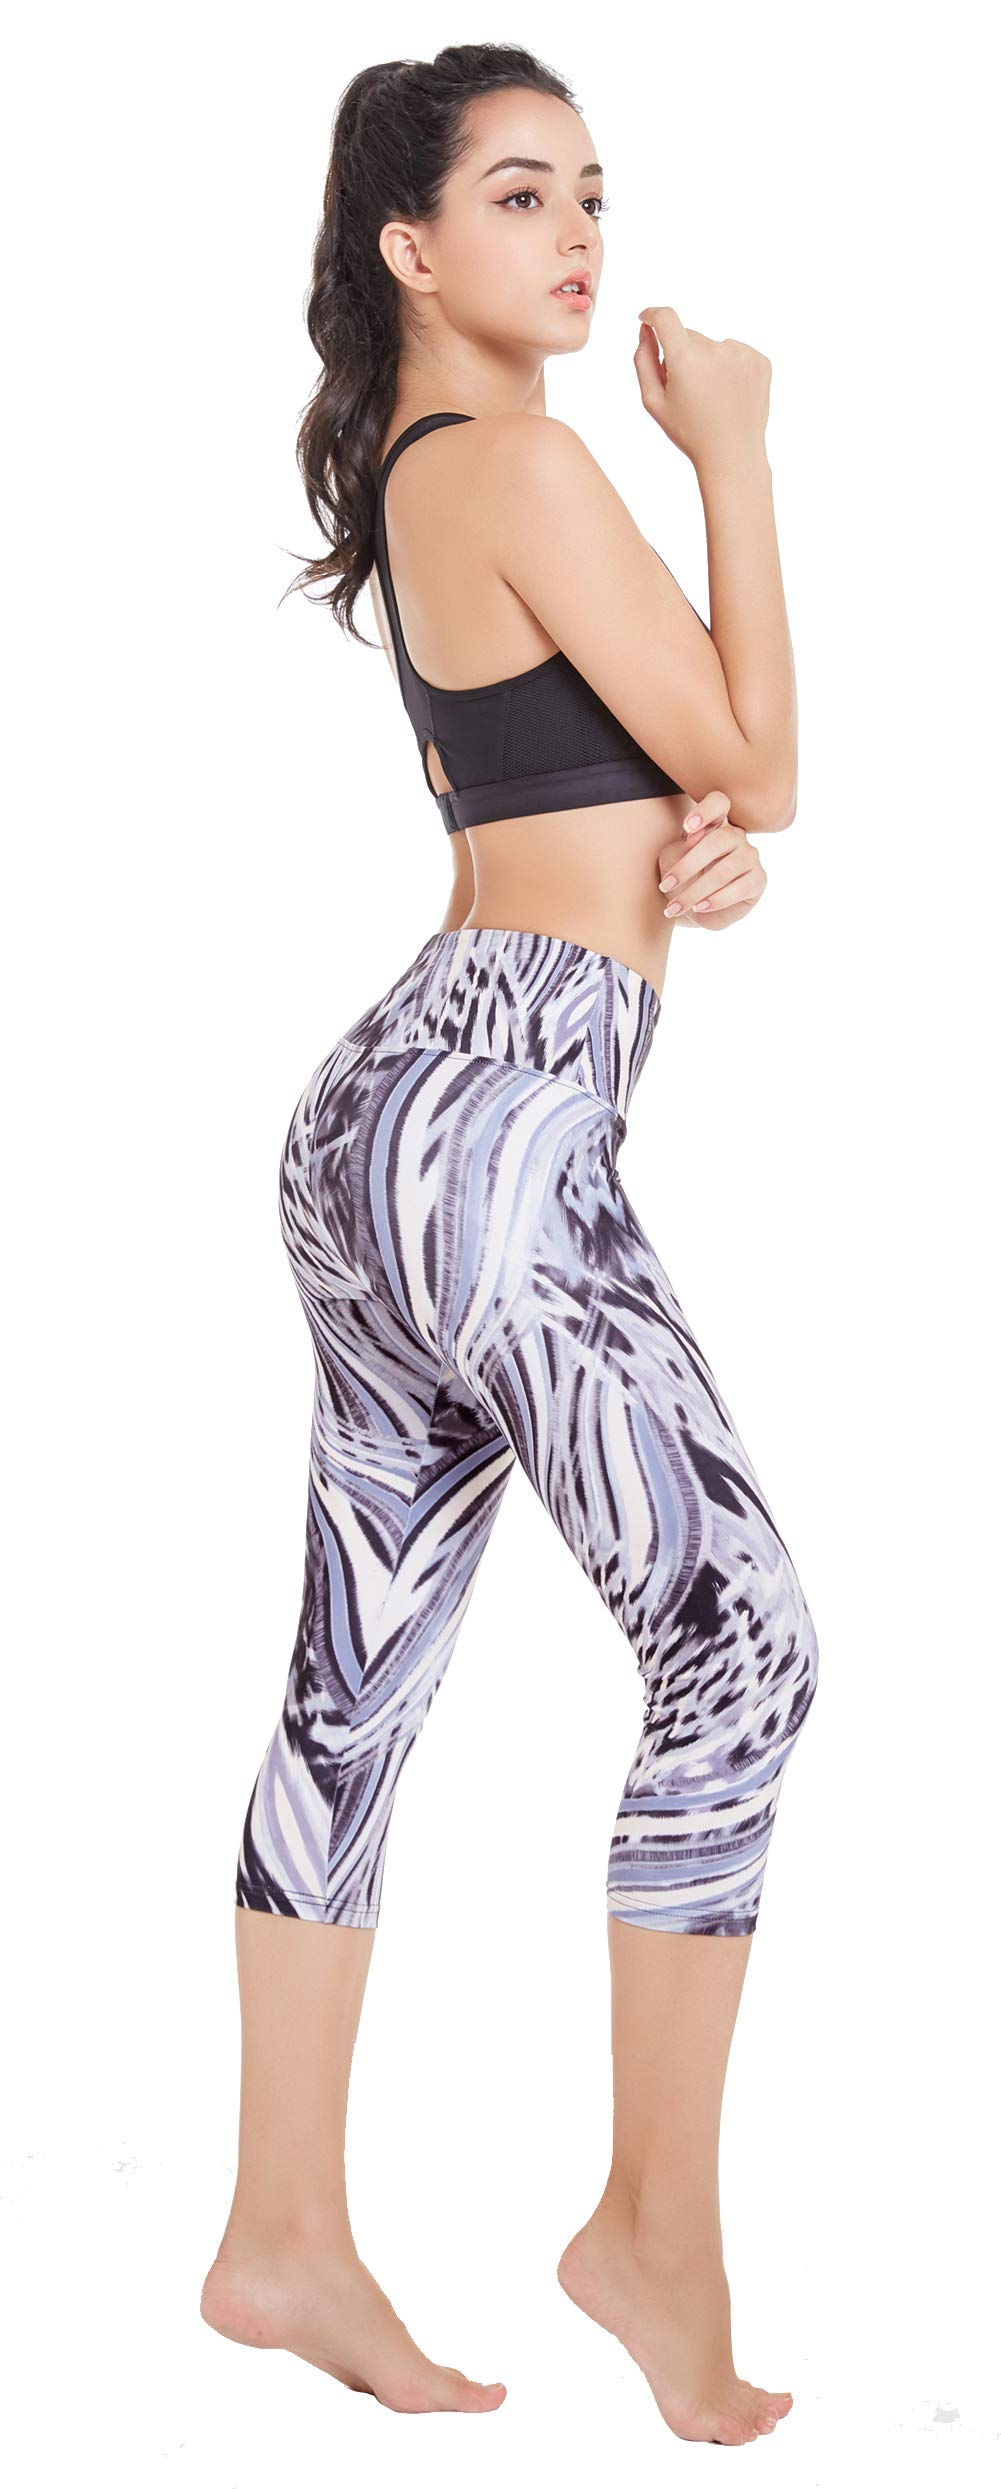 Picotee Women's Printed Yoga Pants Workout Running Capri Leggings w Hidden Pocket (Feather, M)